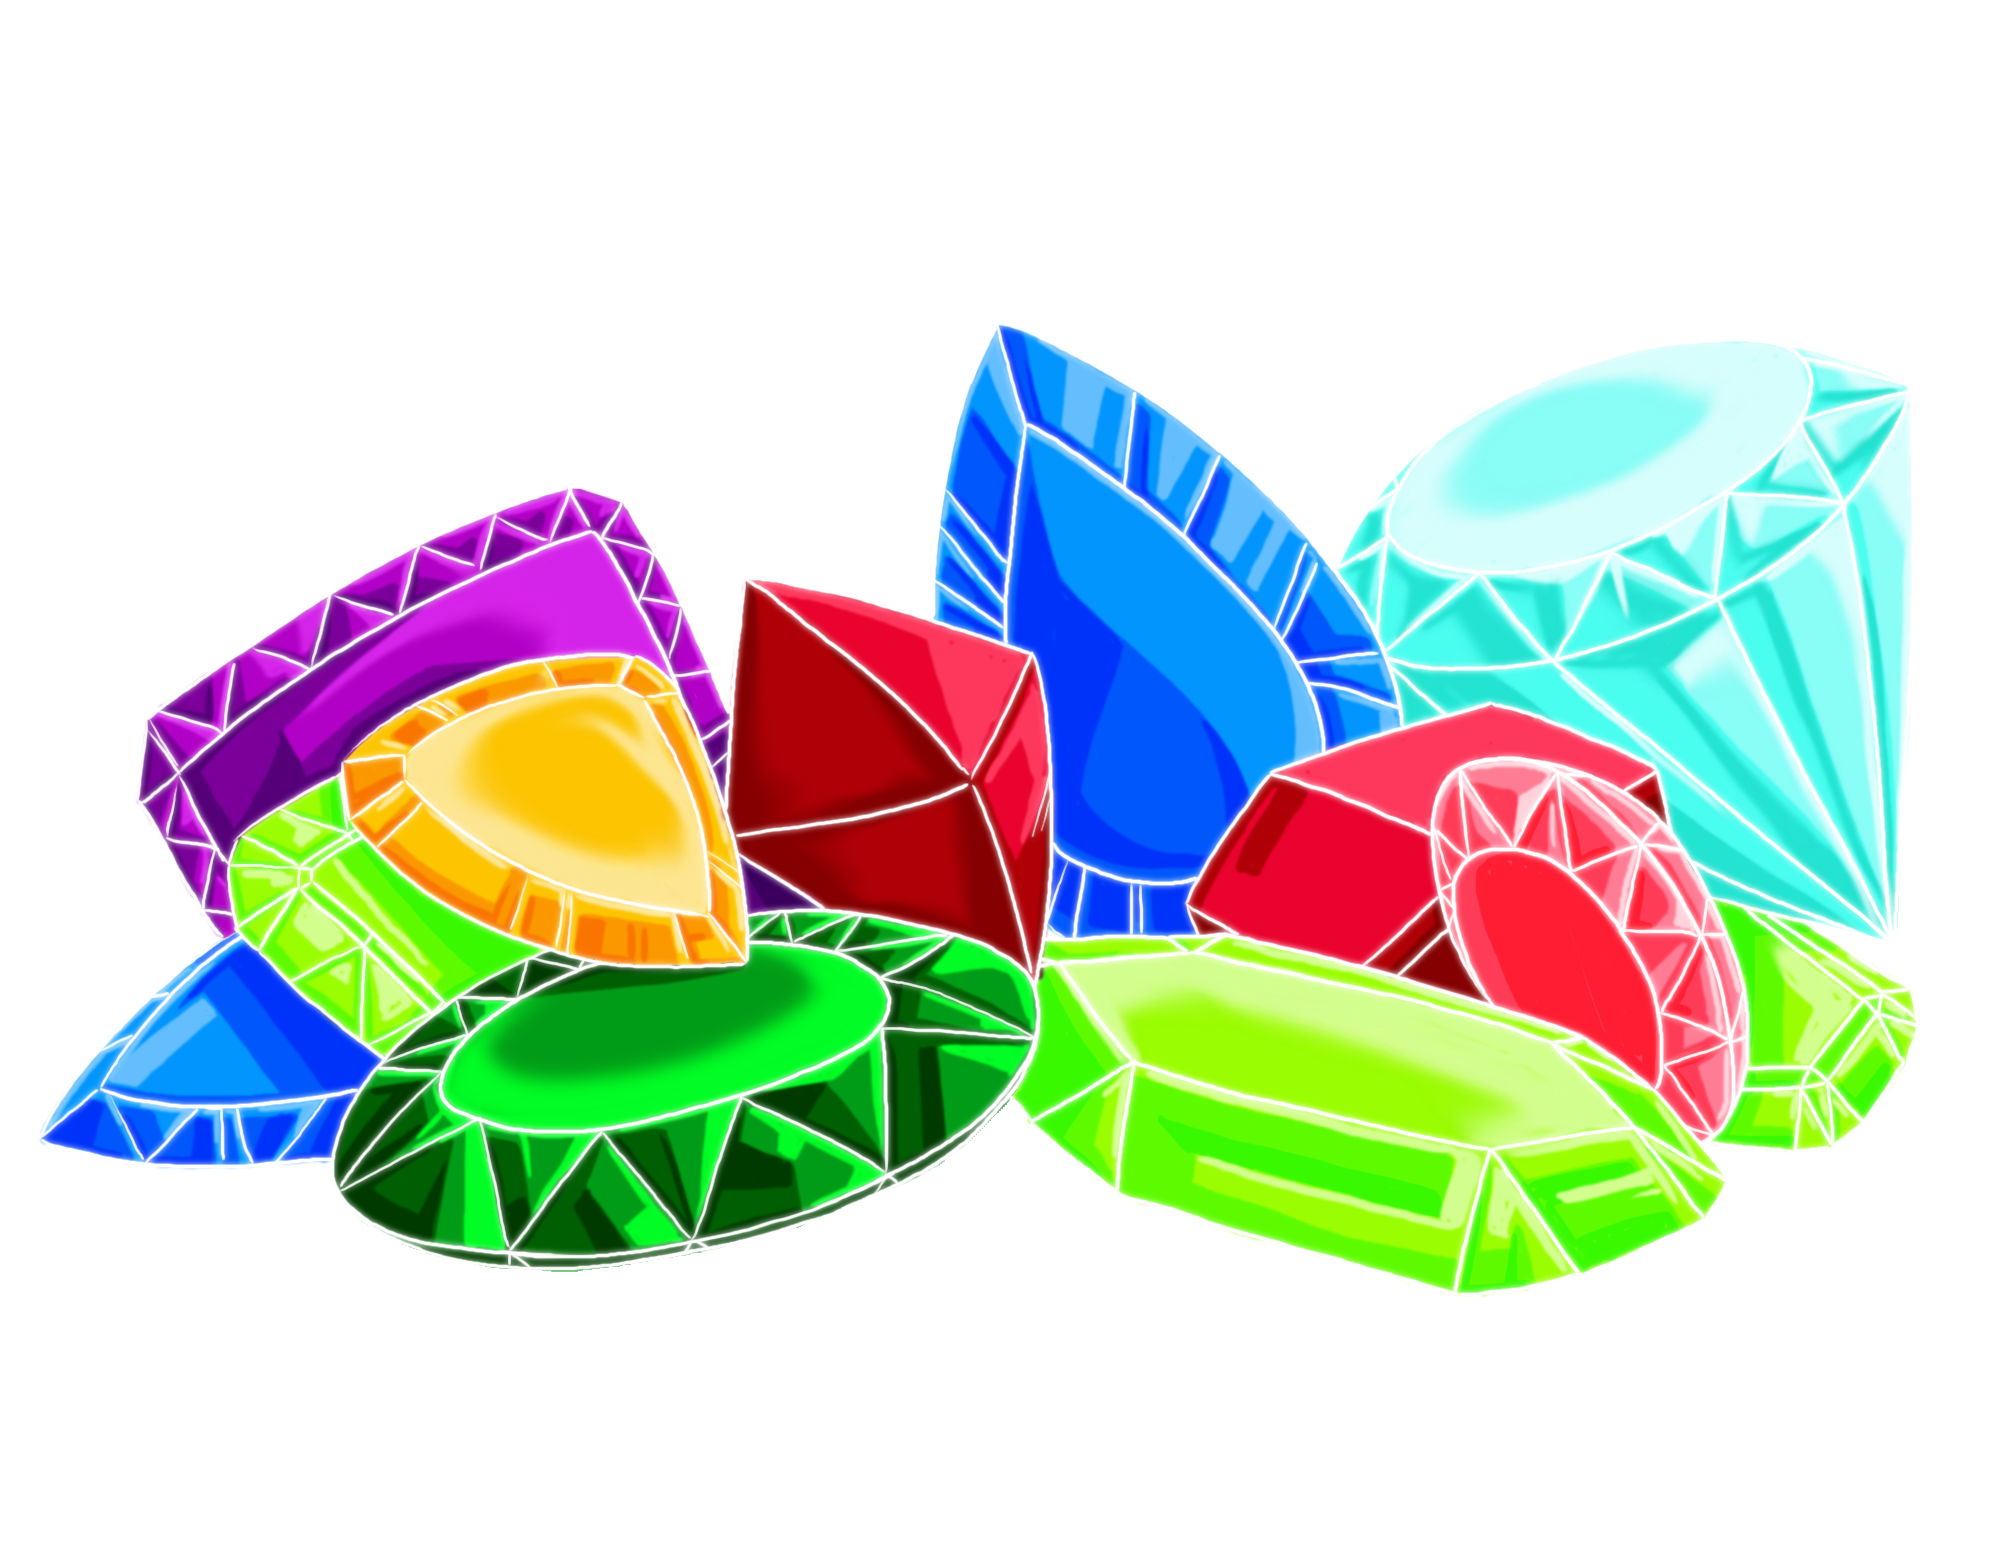 treasure clipart precious